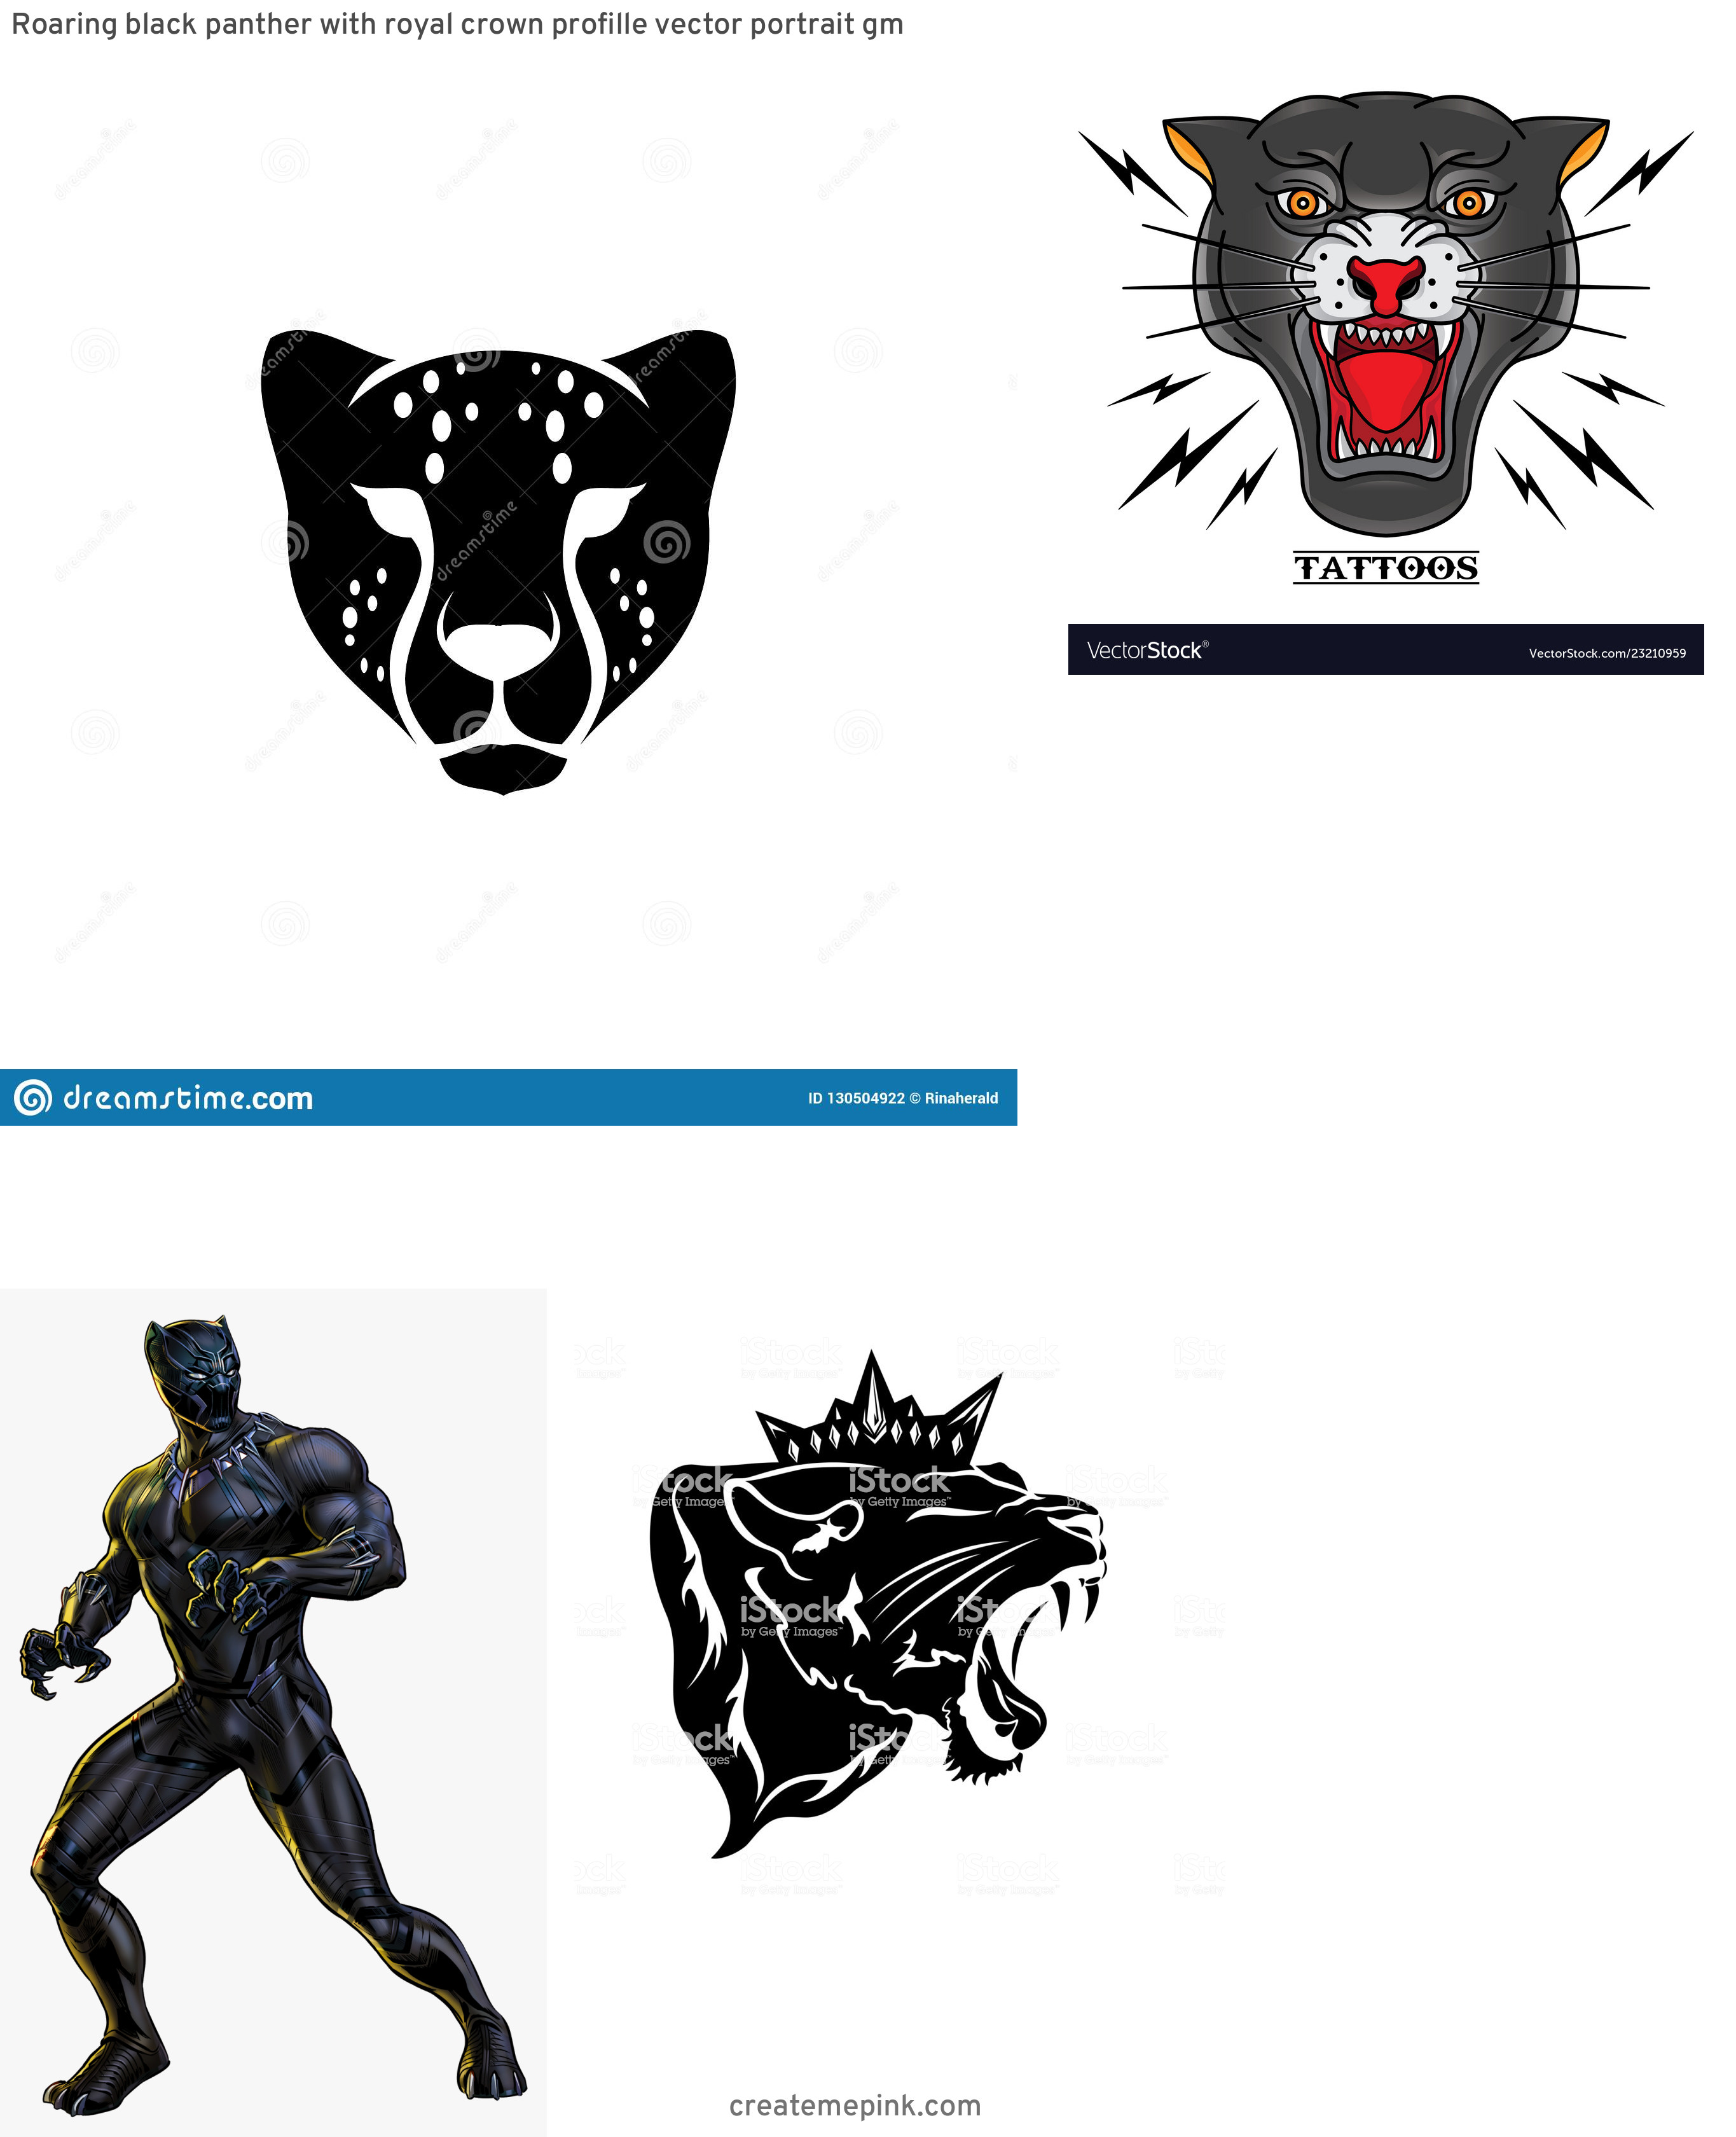 Black Panther Mask Vector: Roaring Black Panther With Royal Crown Profille Vector Portrait Gm